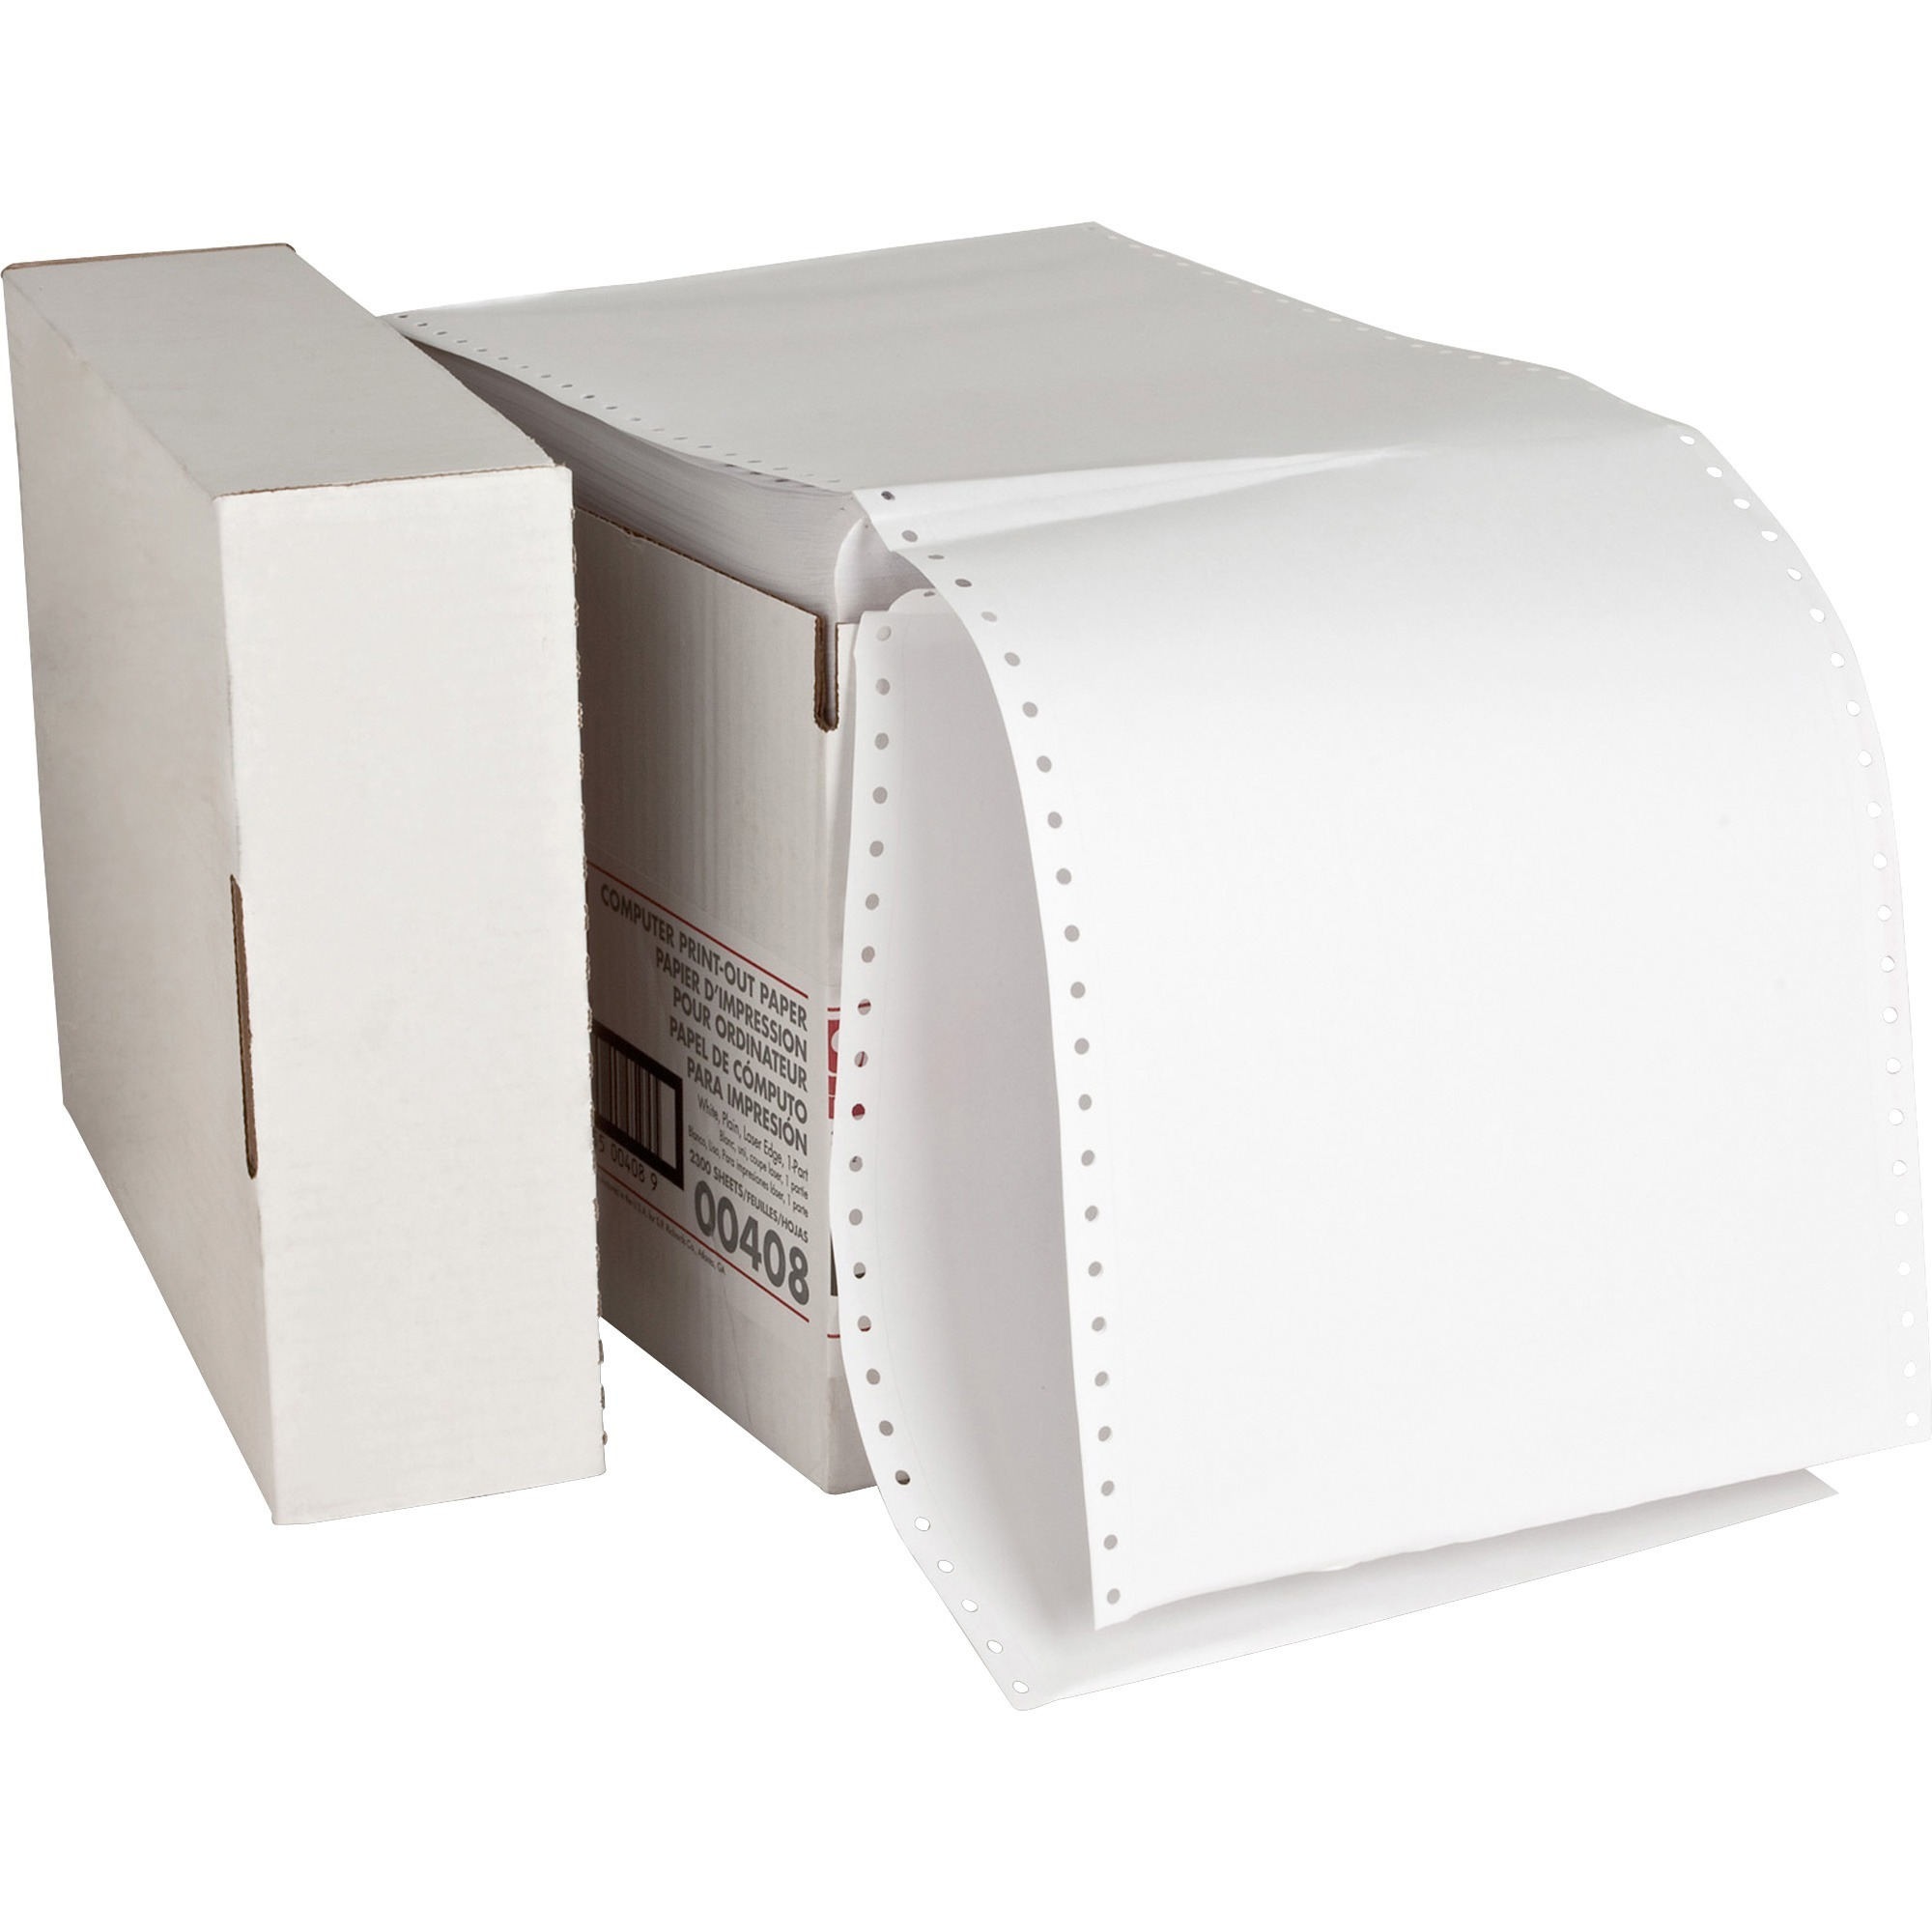 Sparco, SPR00408, Perforated Blank Computer Paper, 2300 / Carton, White